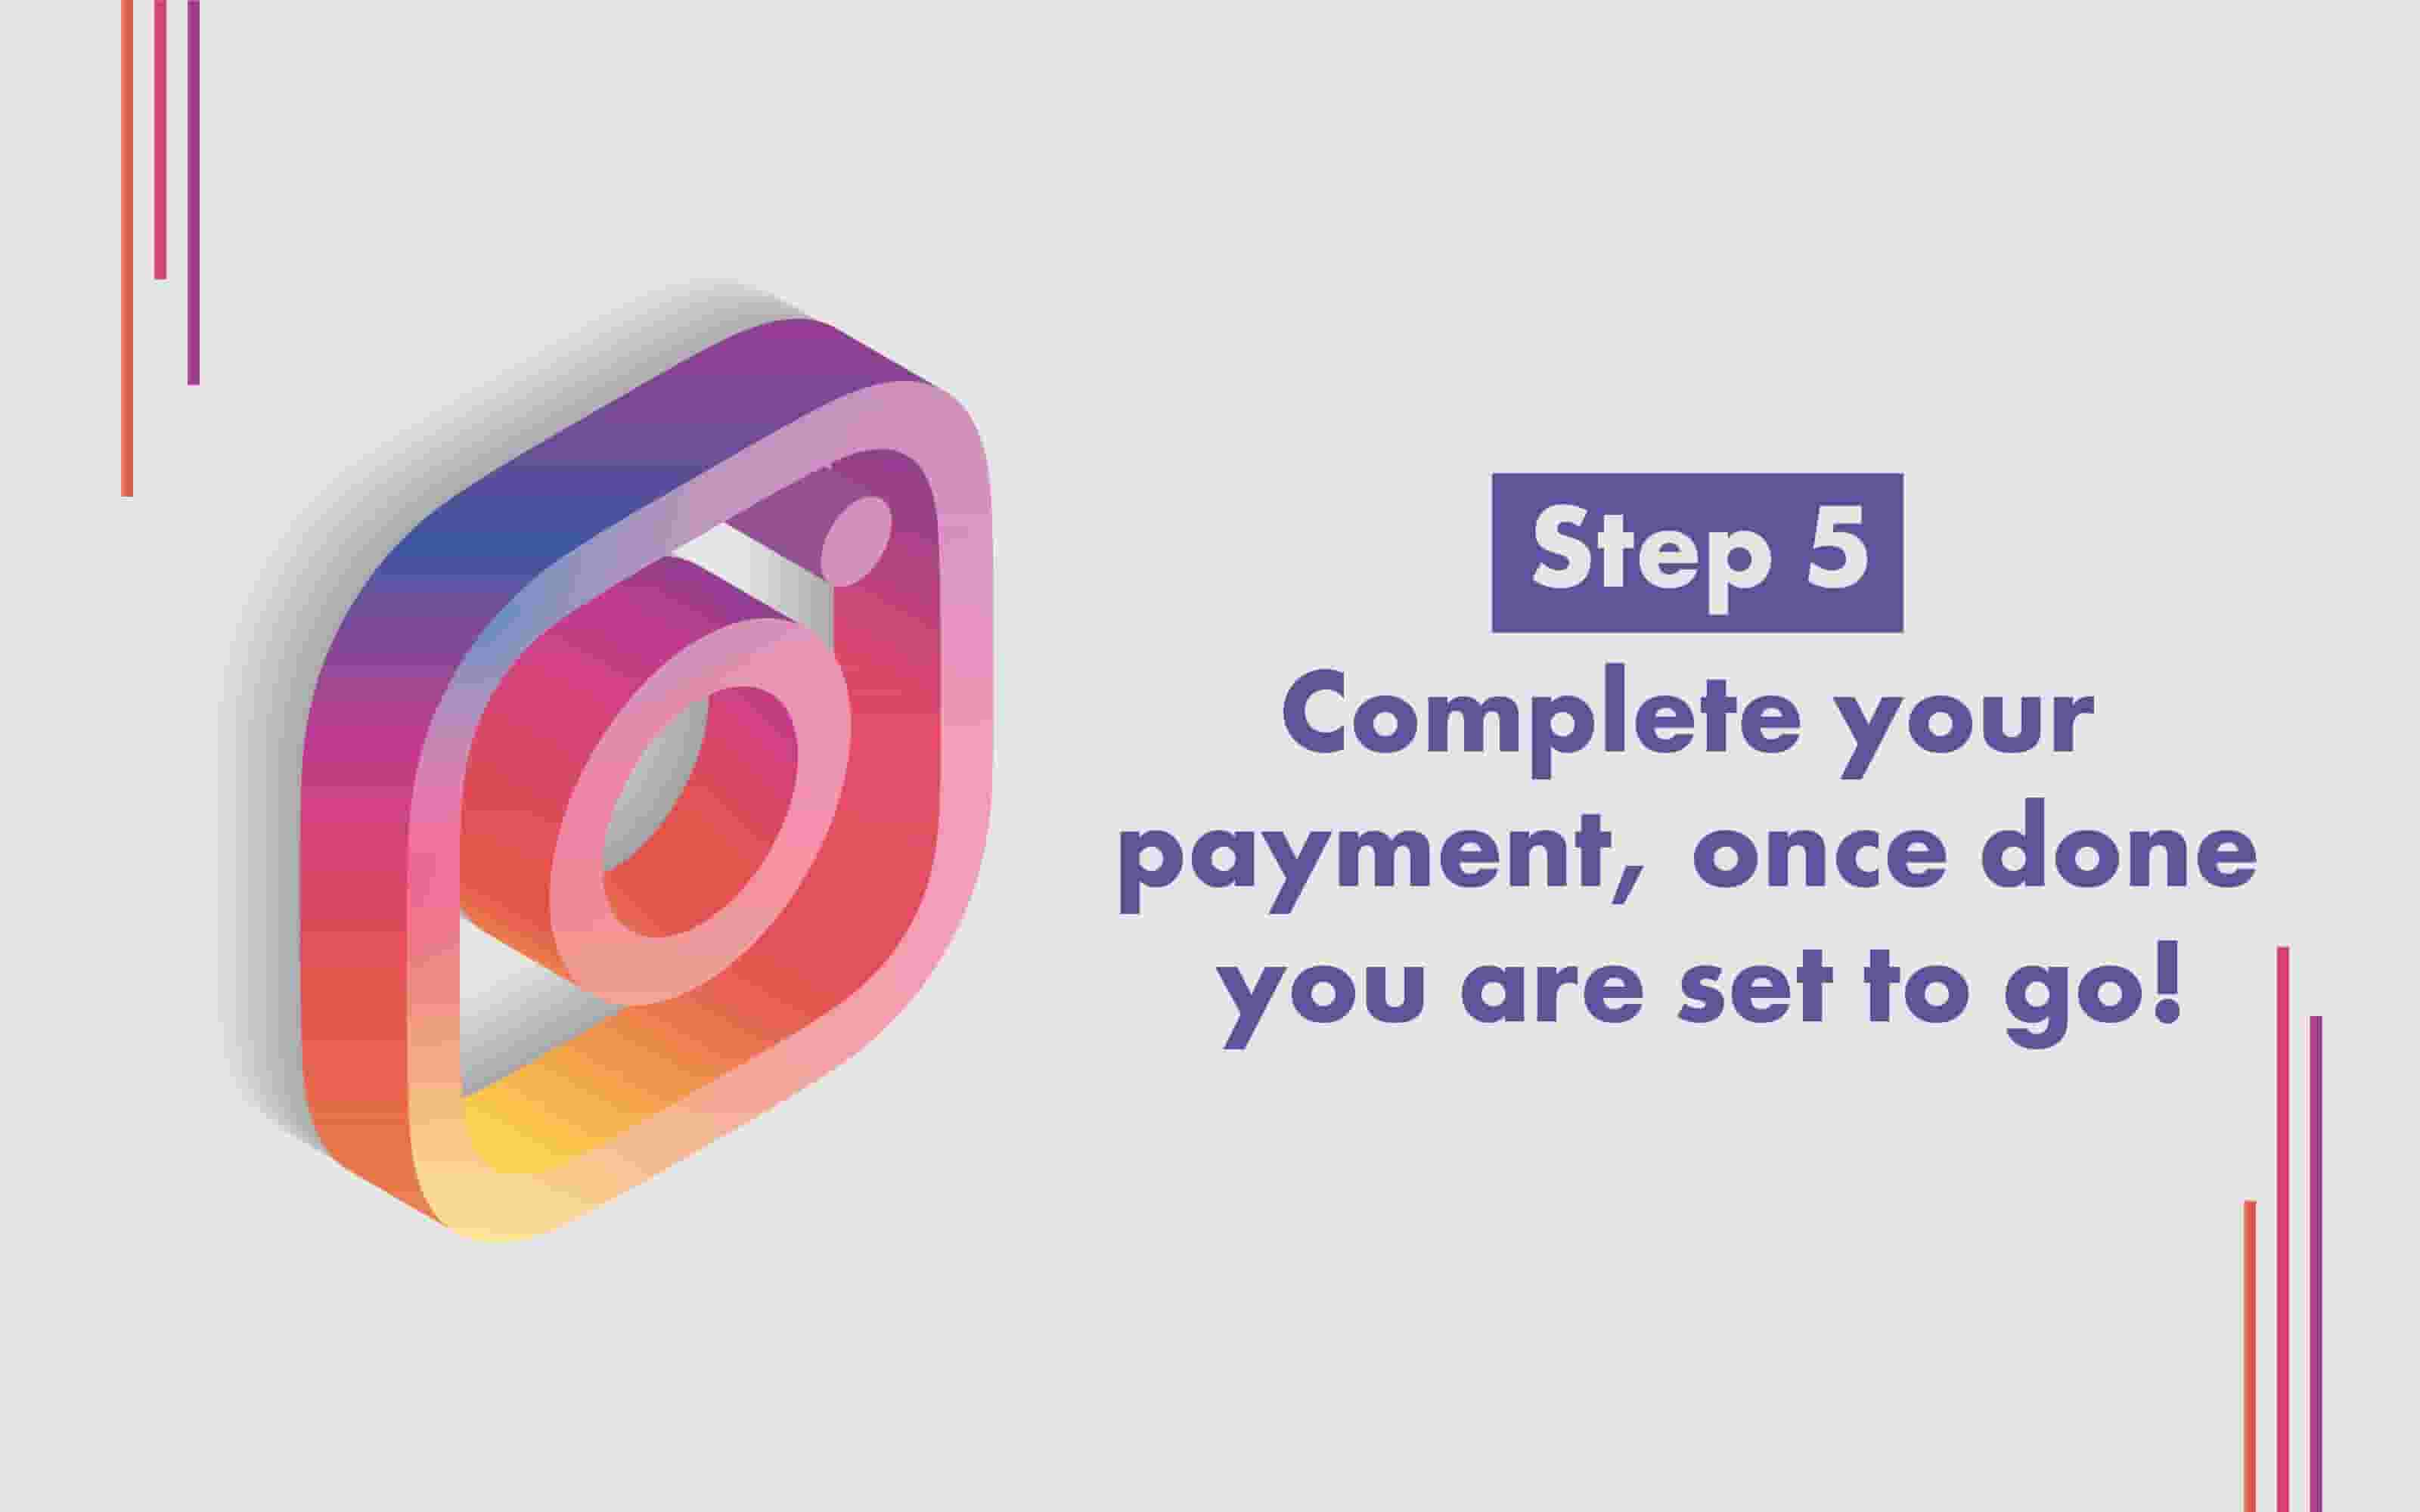 How to Buy Instagram followers step 5